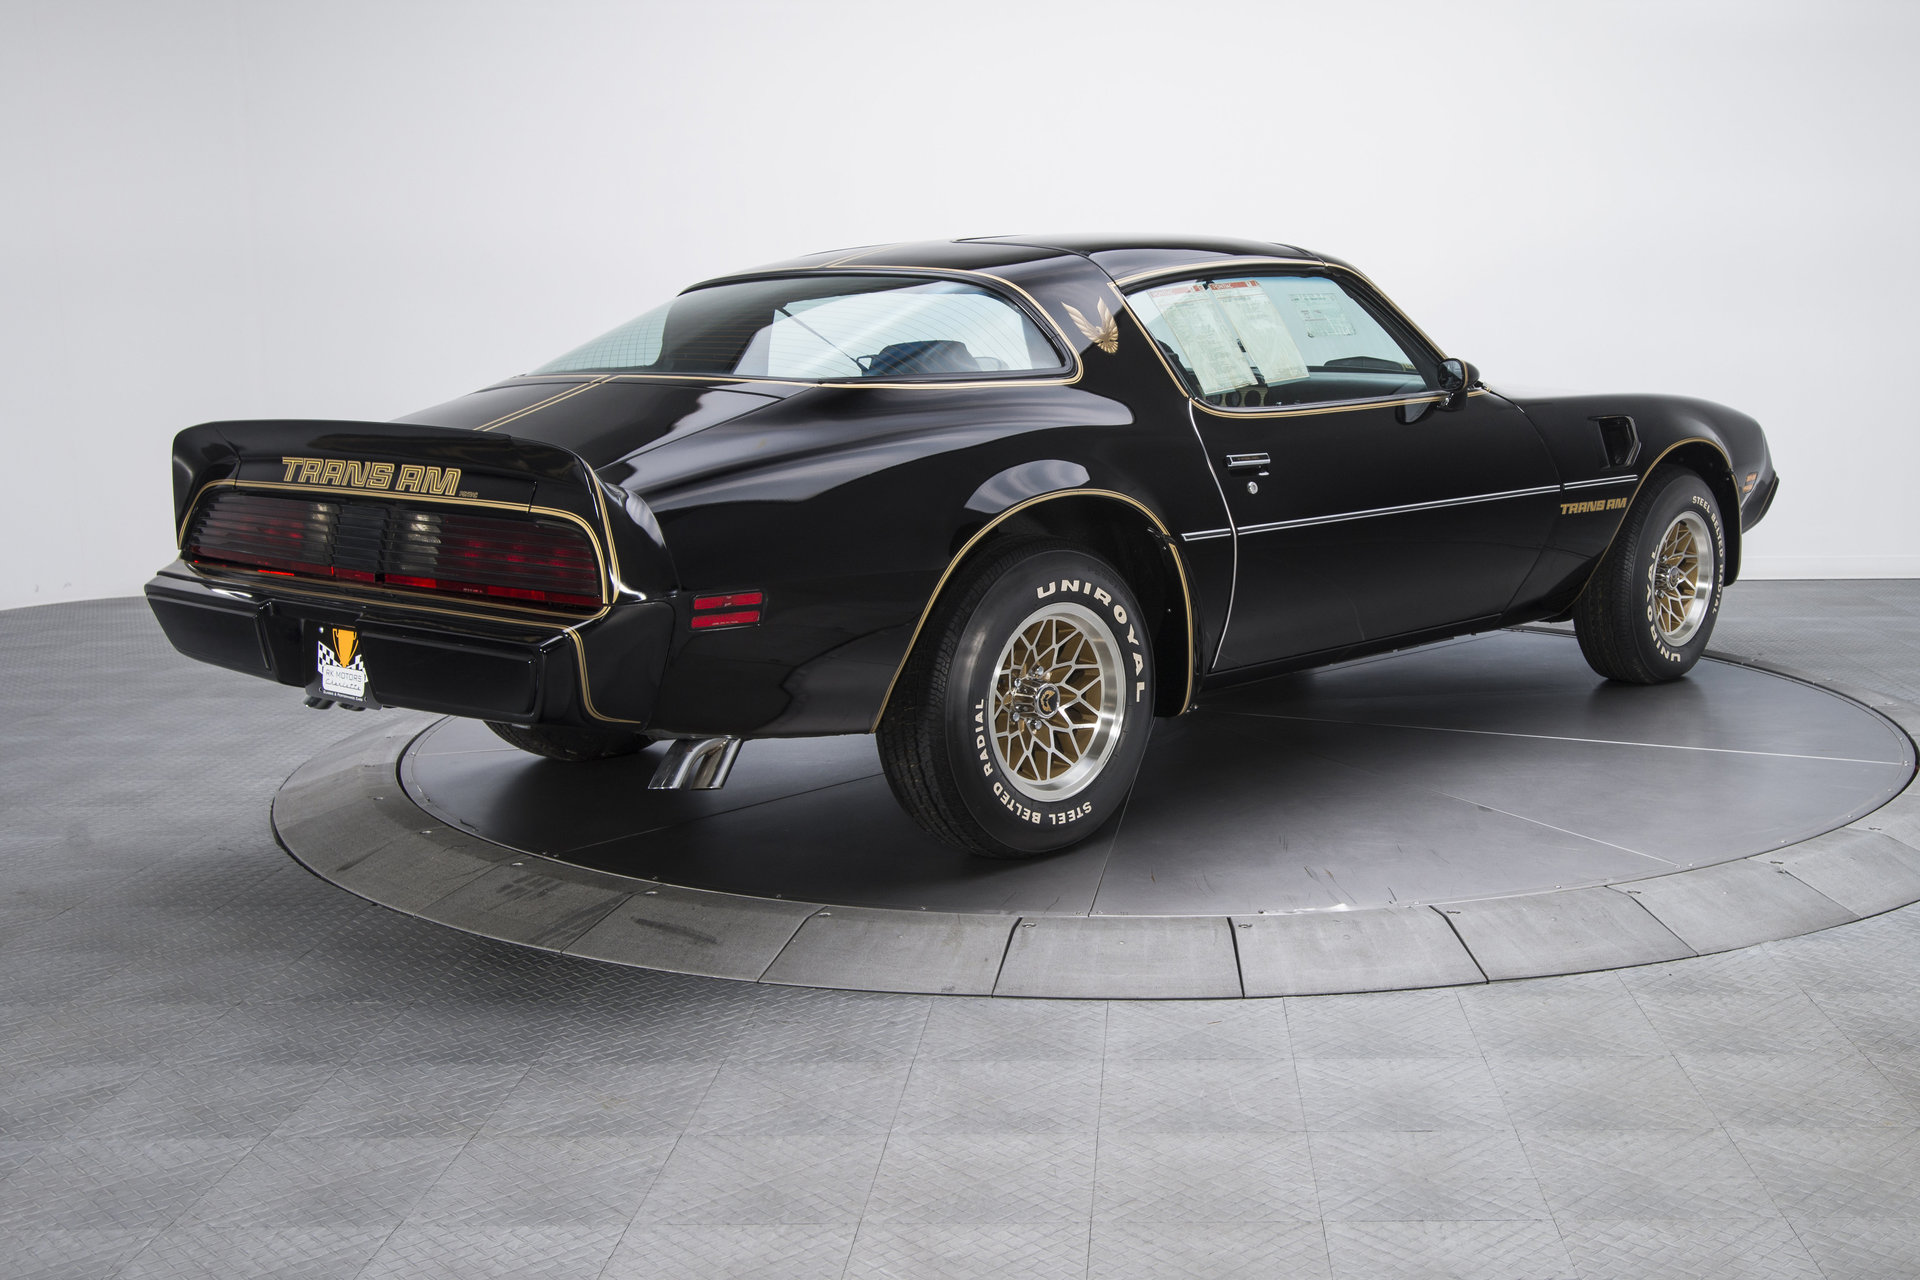 1977 trans am bandit edition-6819